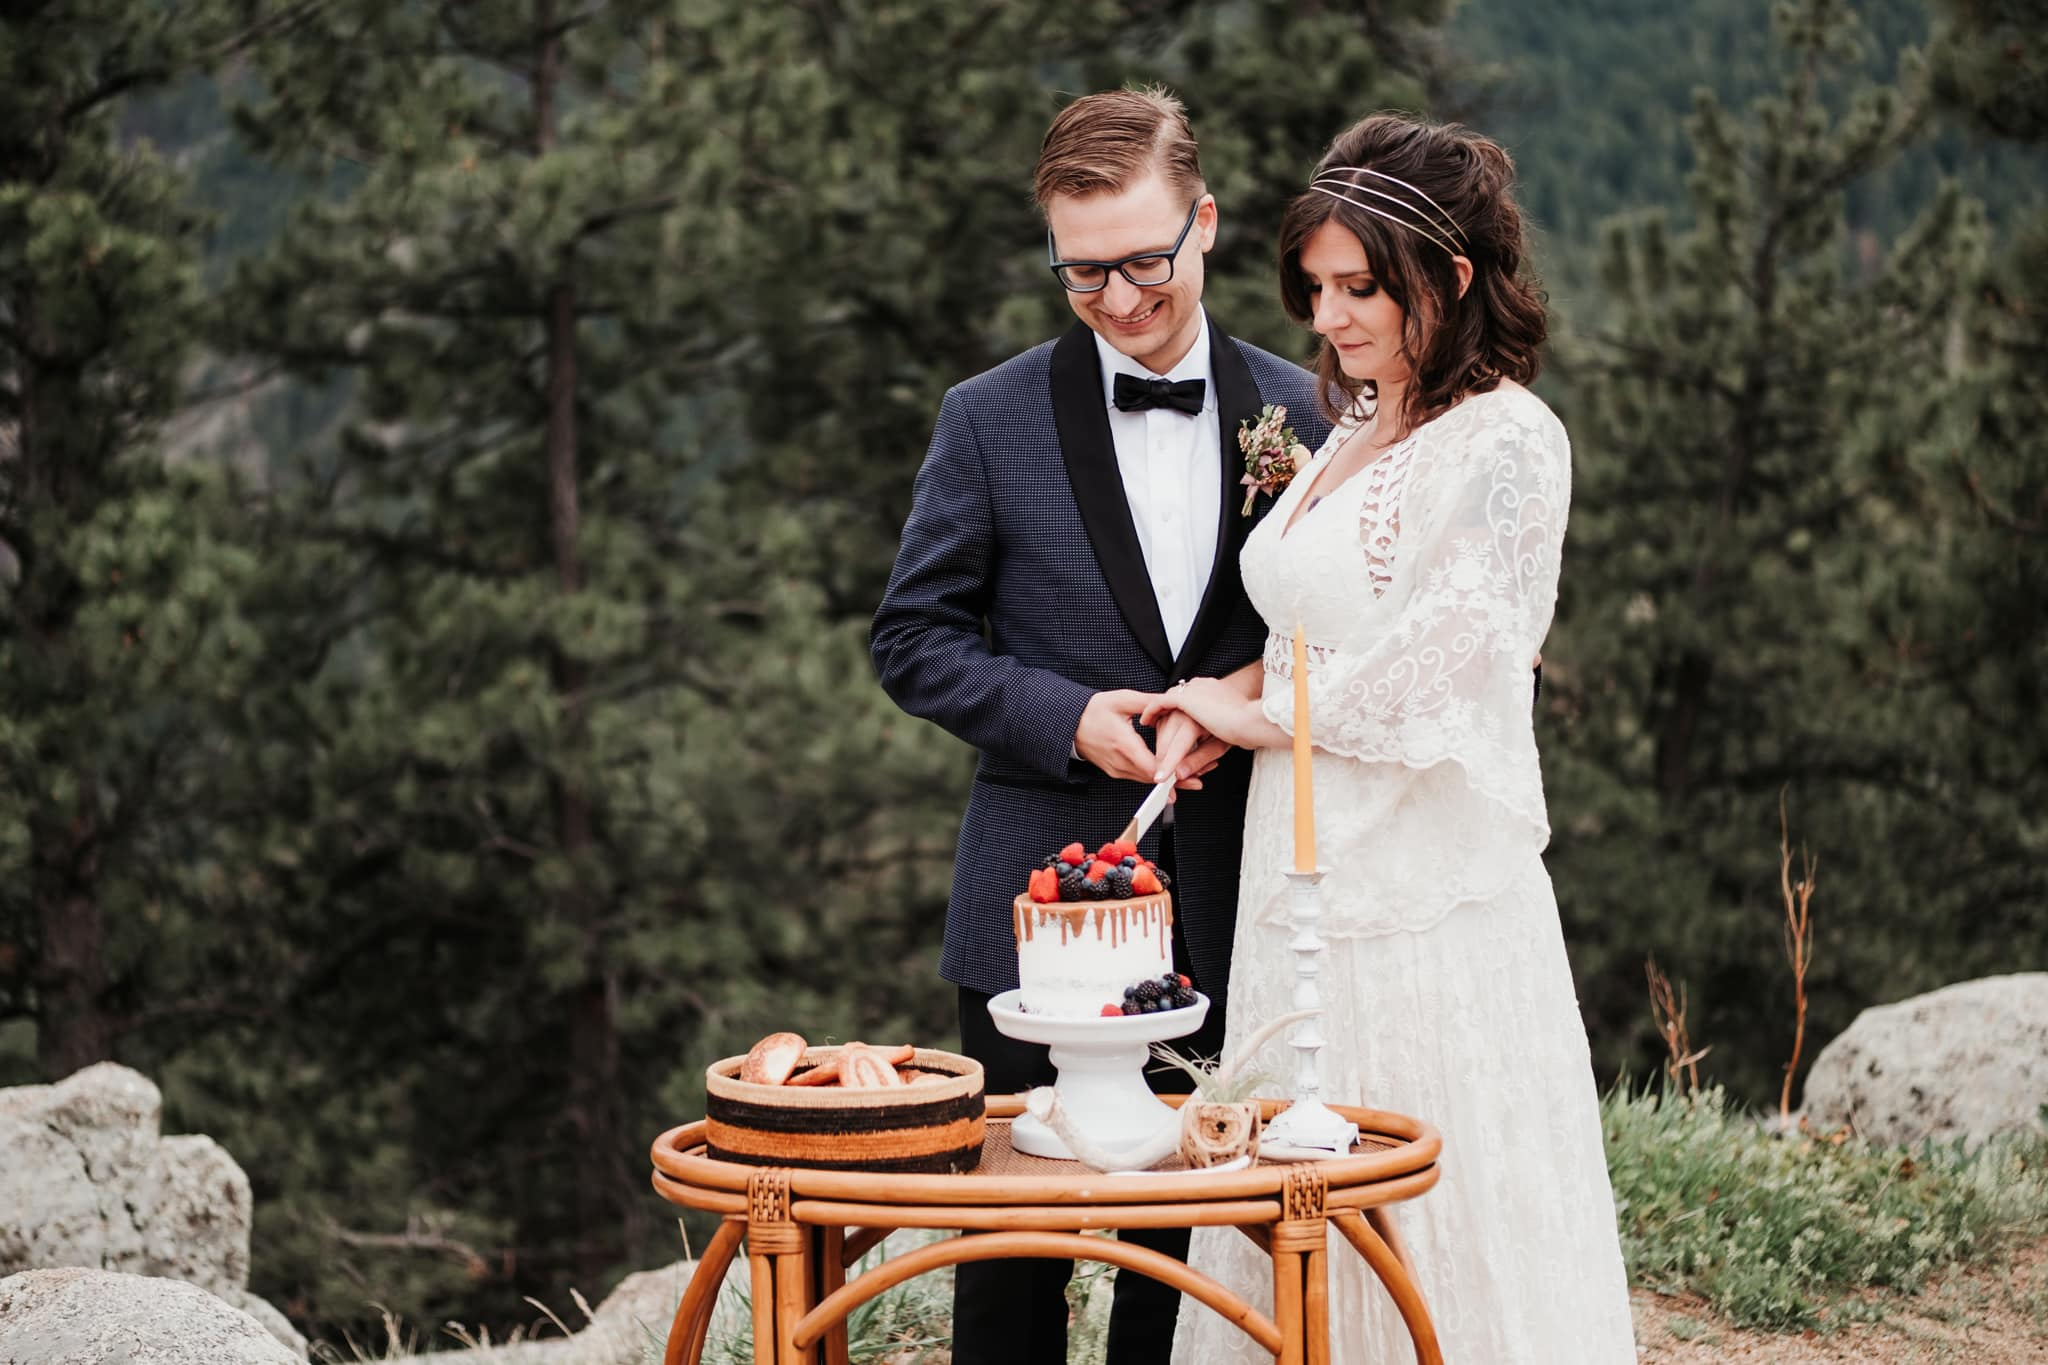 Bride and groom cutting cake at outdoor elopement ceremony